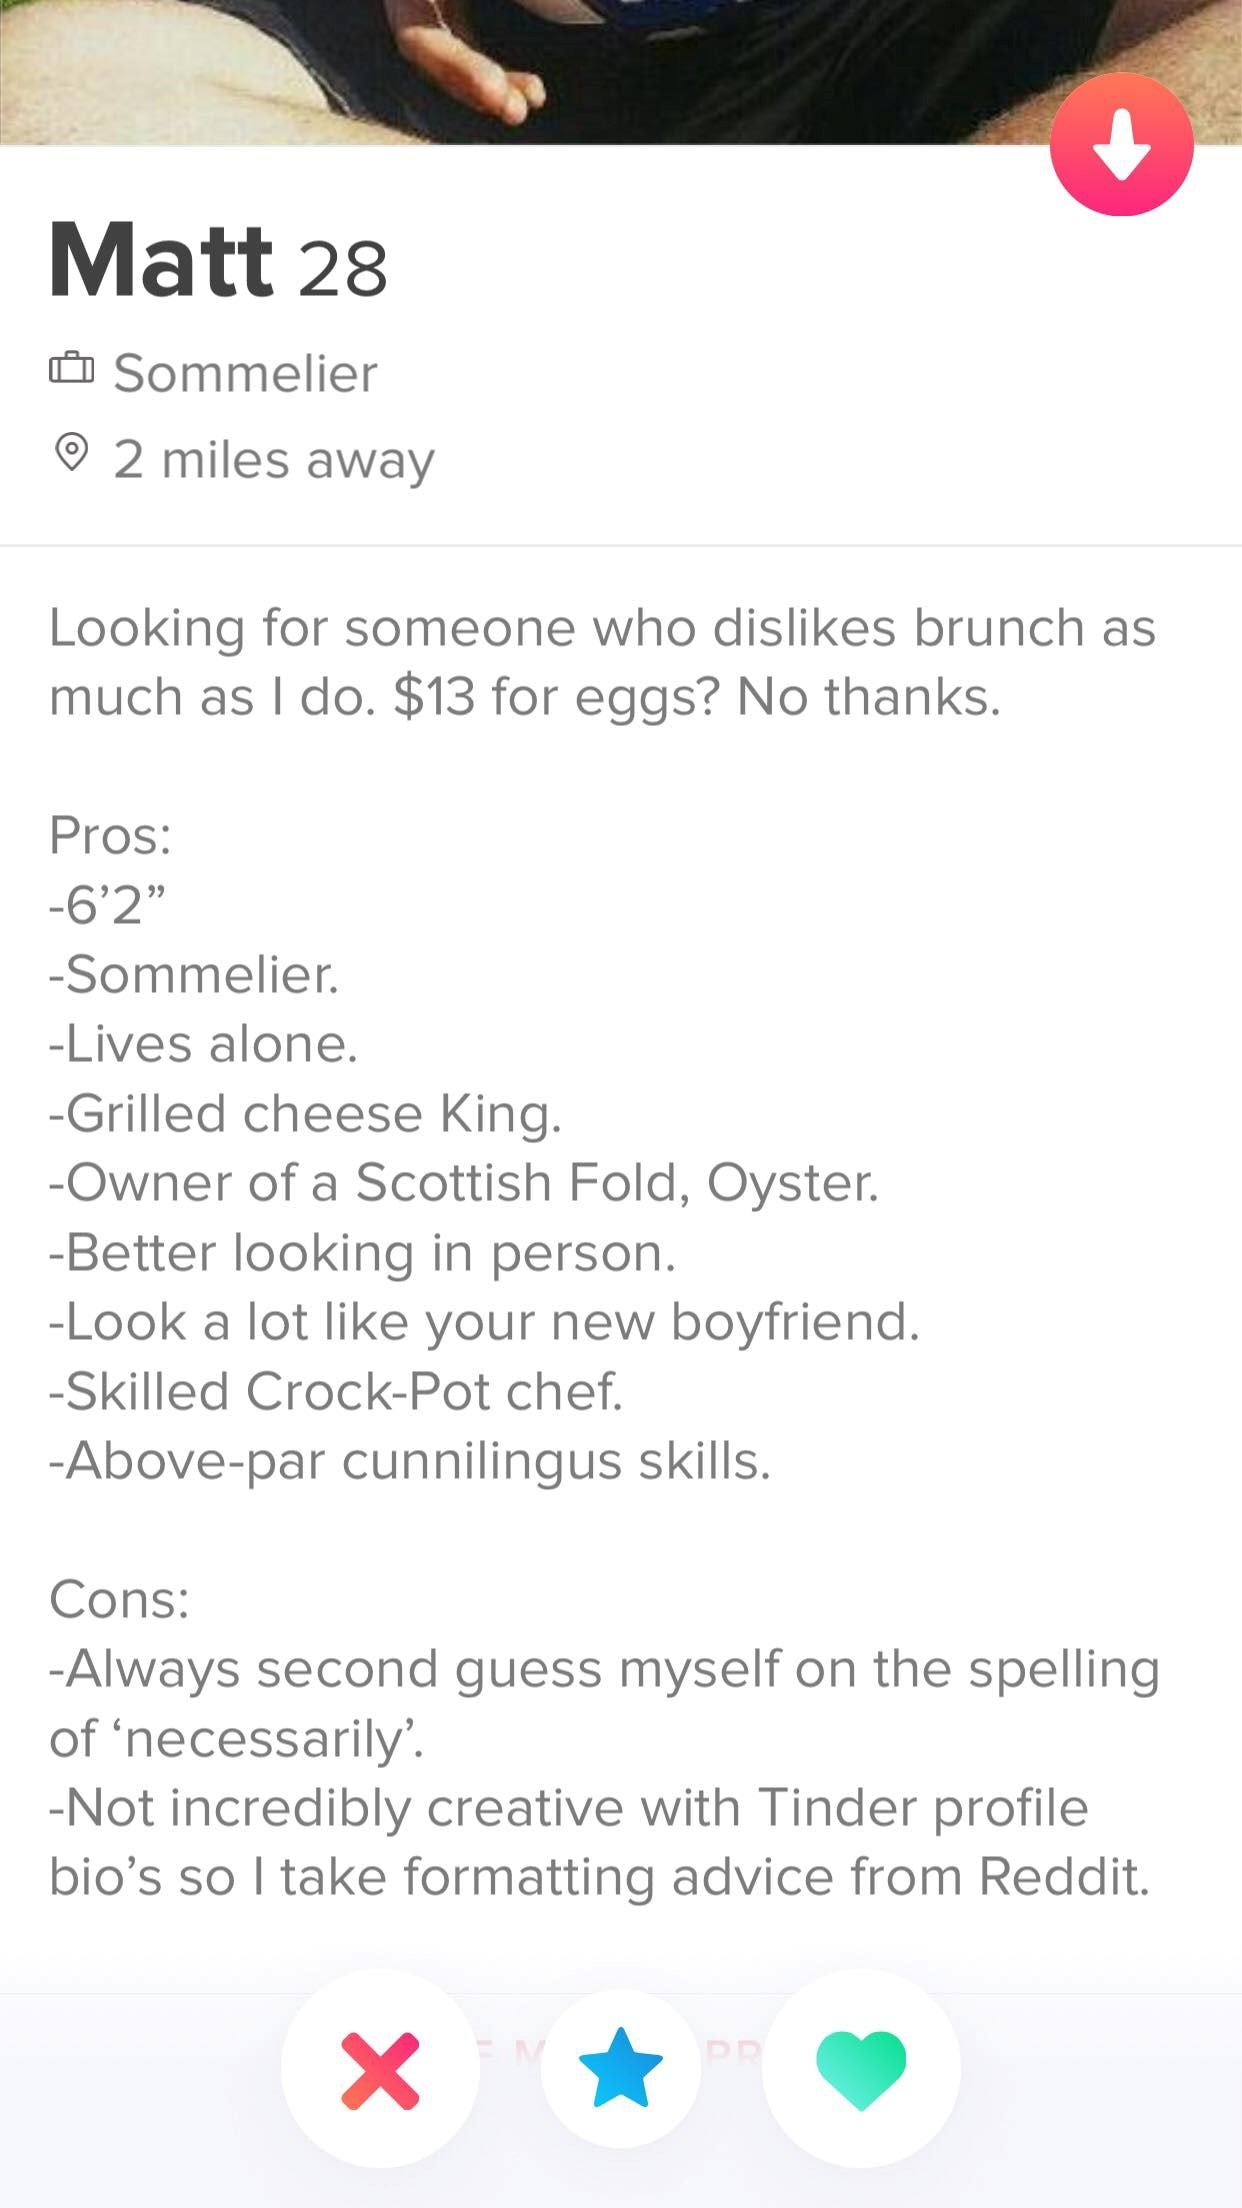 10 Best Tinder Bio Examples for Guys (To Make Her Swipe